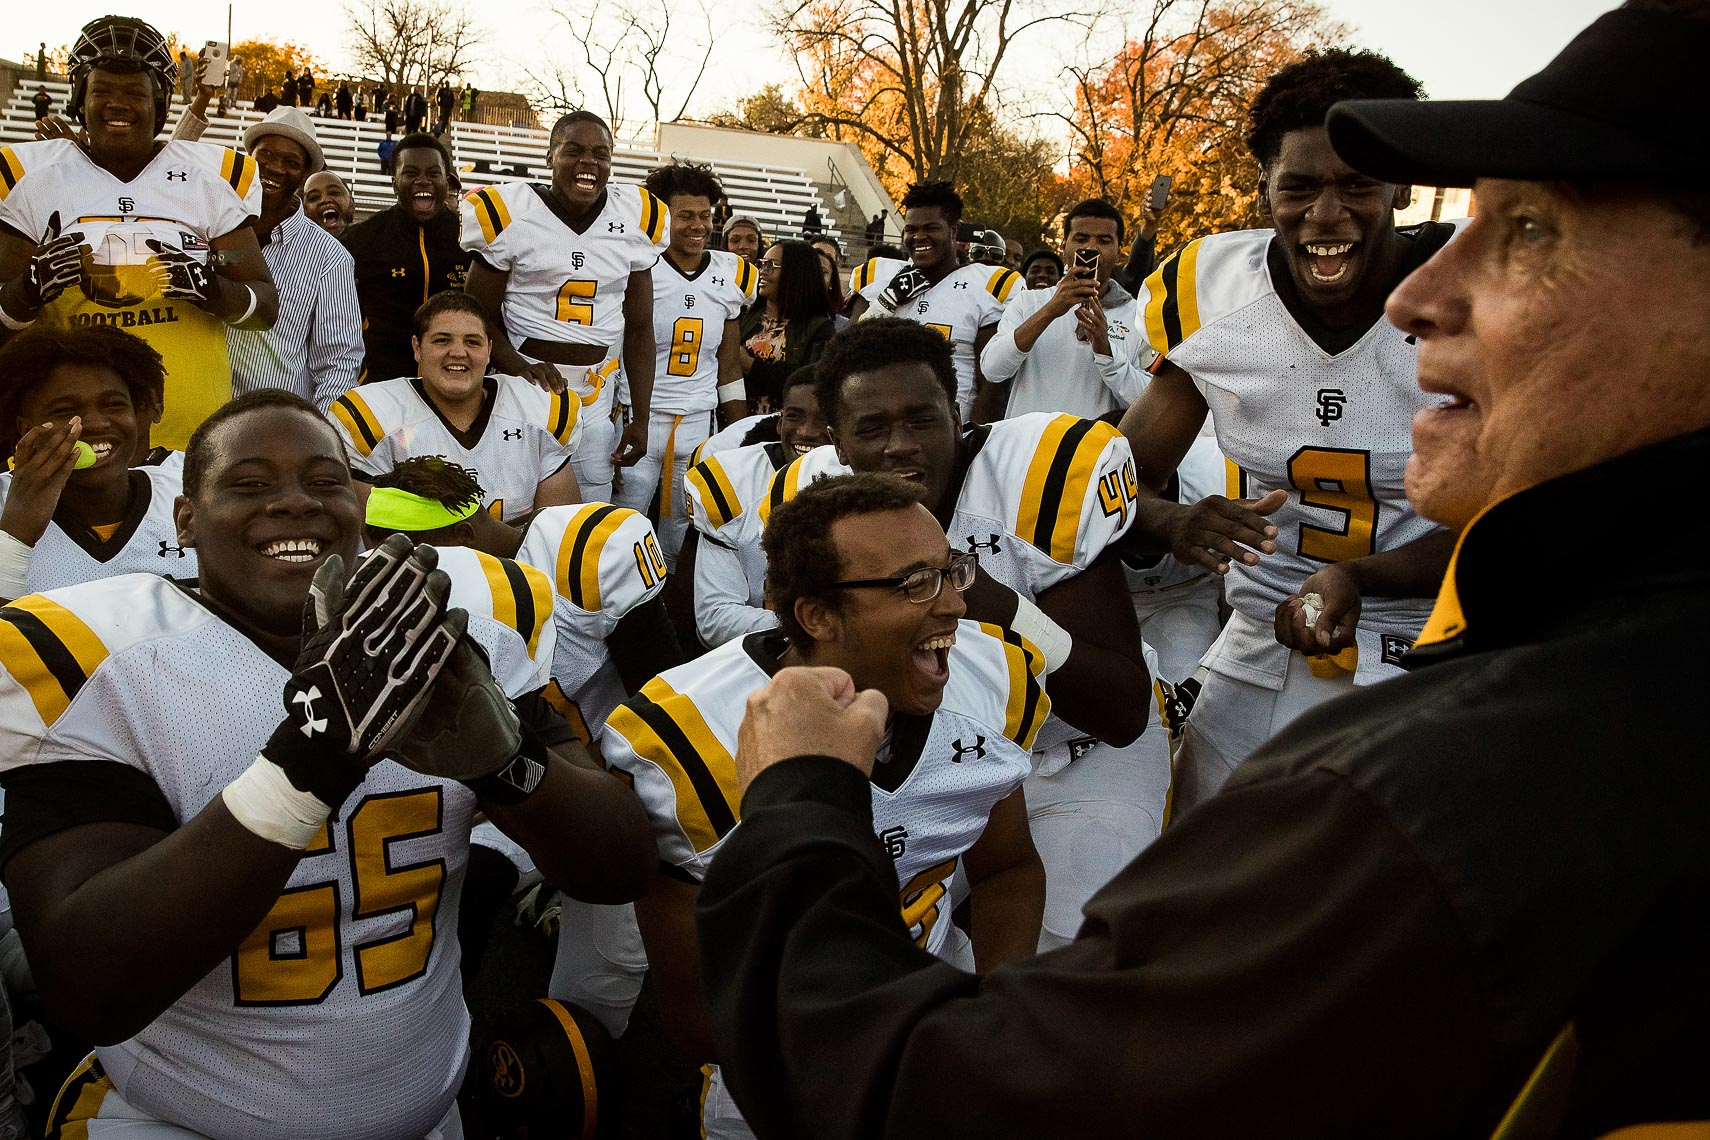 stfrances18_ St Frances Academy Panthers football Baltimore City poverty ESPN documentary MIAA Champions youth football team coached by former Gilman and Michigan football coach Biff Poggi